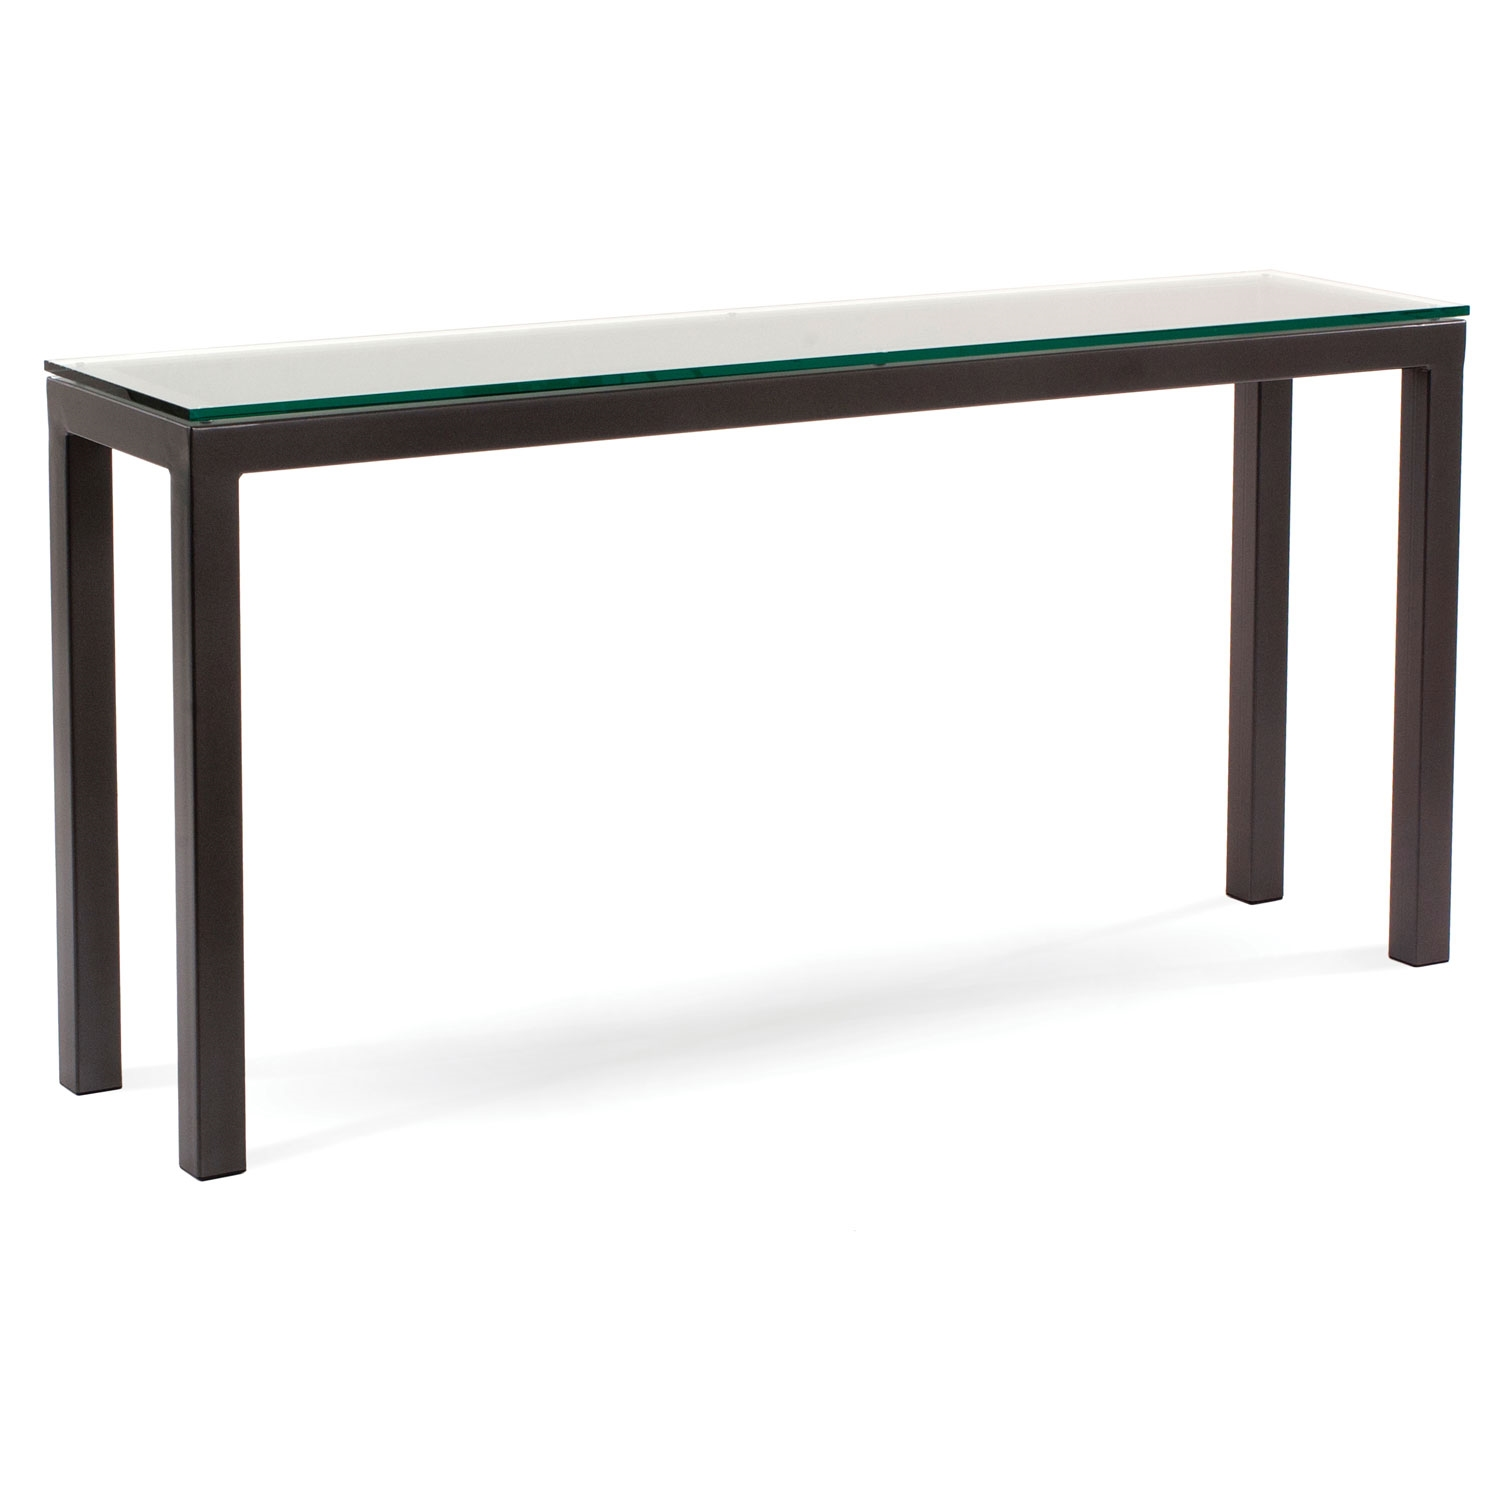 60 in contemporary parsons console table w 60 in x d 14 in x h pictured is the charleston forge manufactured 60 in parsons console table that measures 60 geotapseo Images